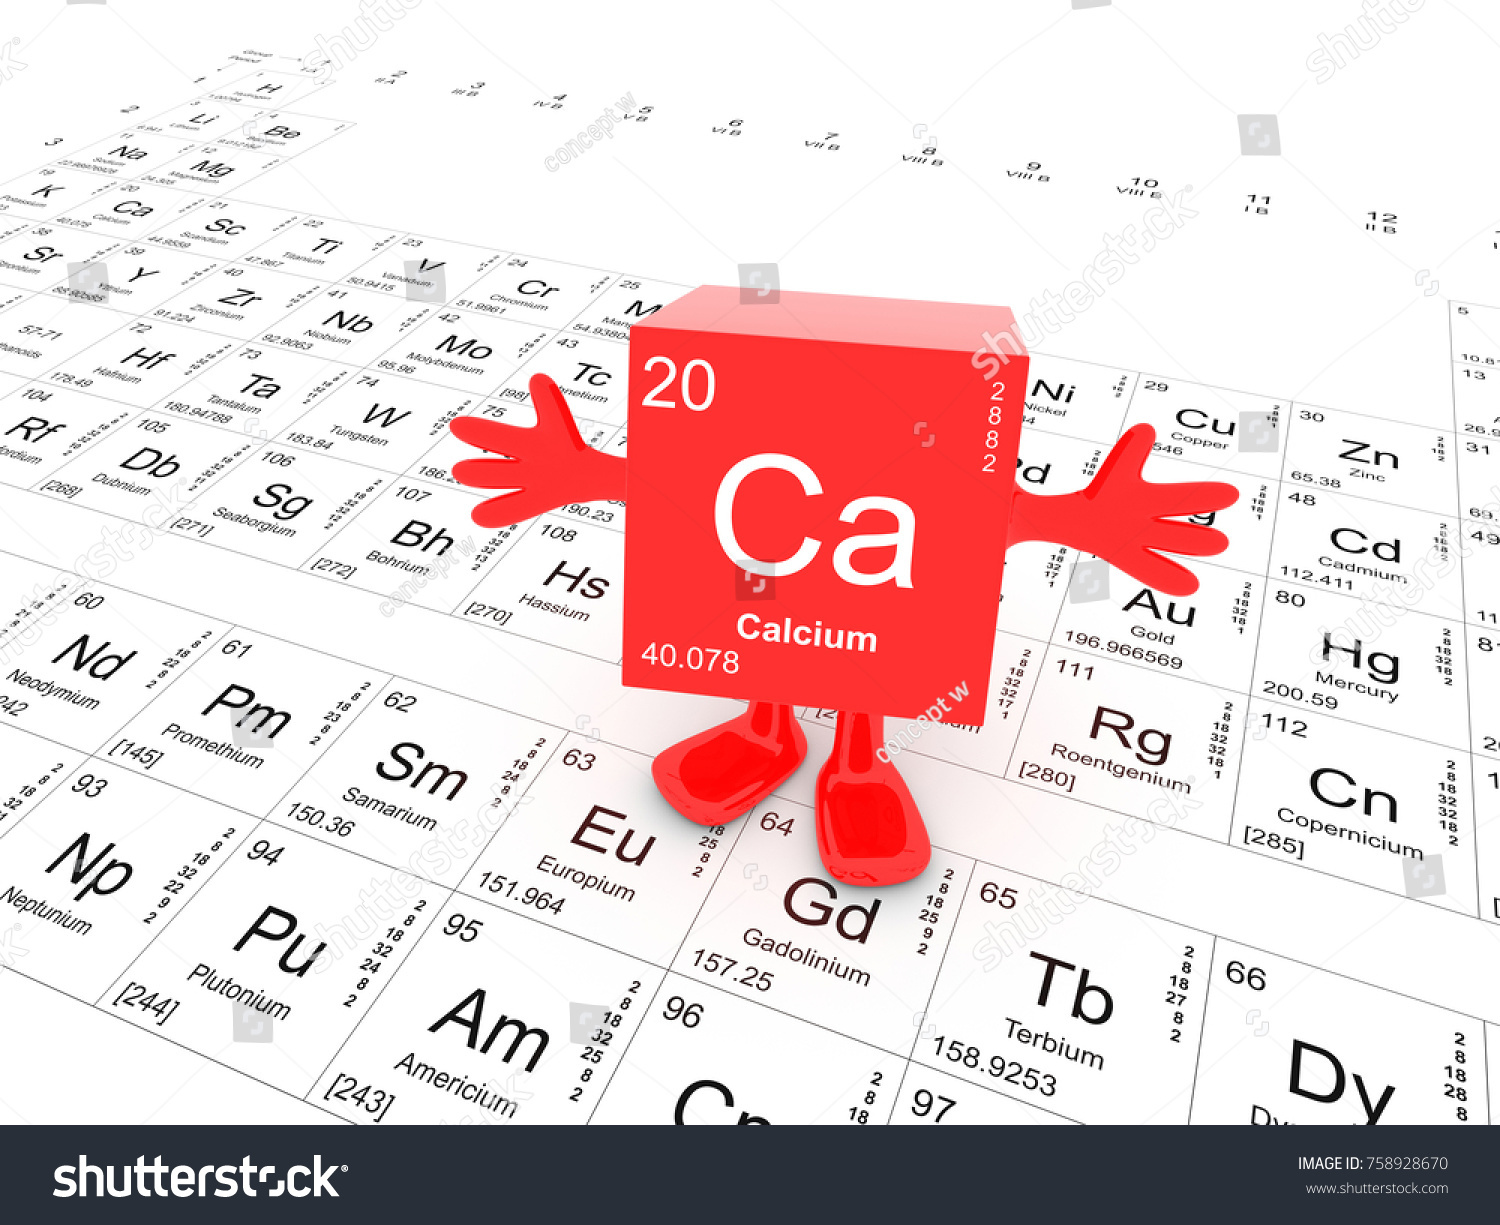 Calcium element symbol gallery symbol and sign ideas calcium element symbol image collections symbol and sign ideas calcium element symbol happy red cube stock buycottarizona